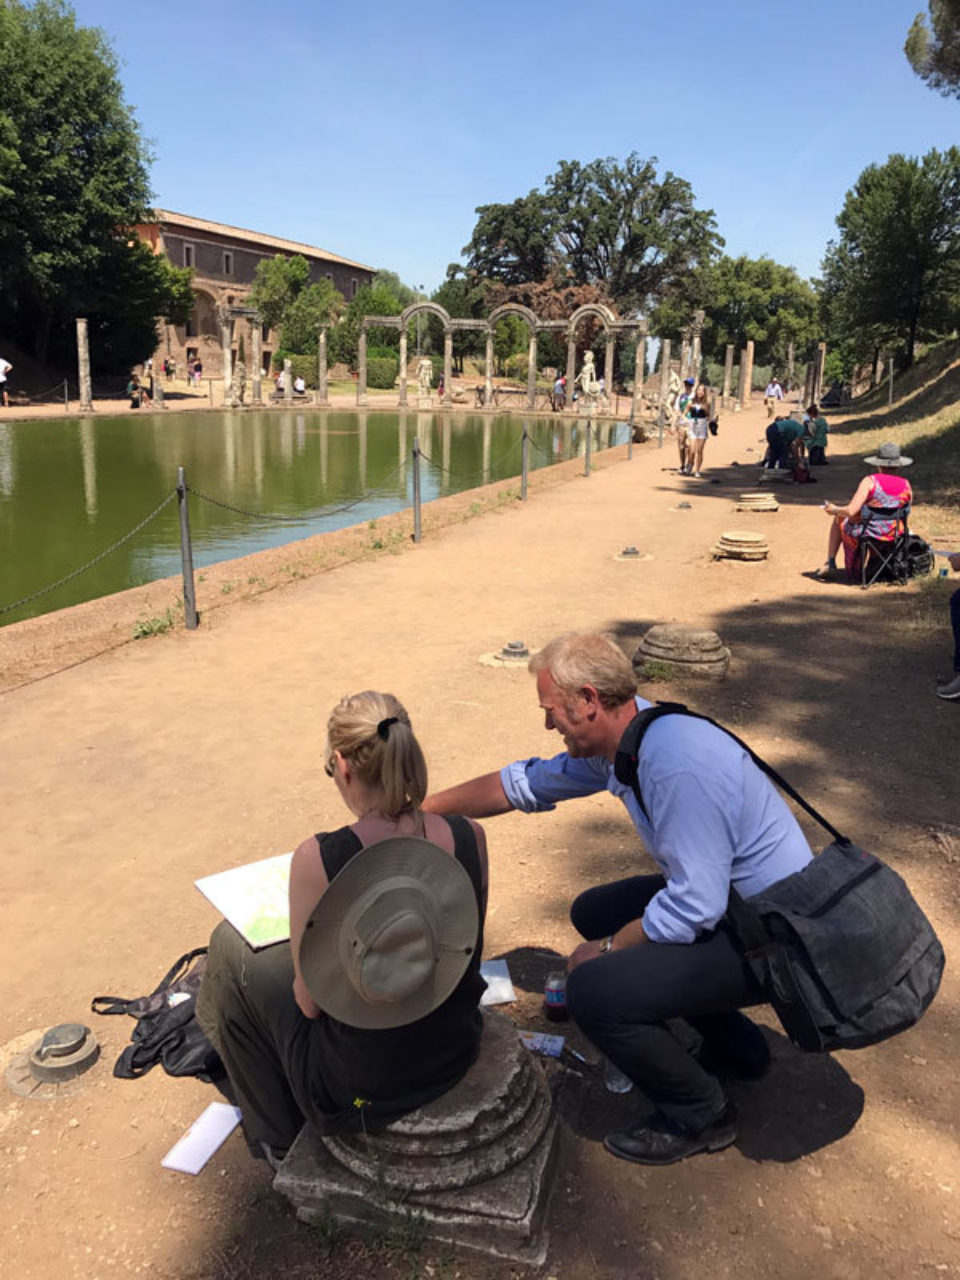 Tour participants sketch on location at the Villa Adriana